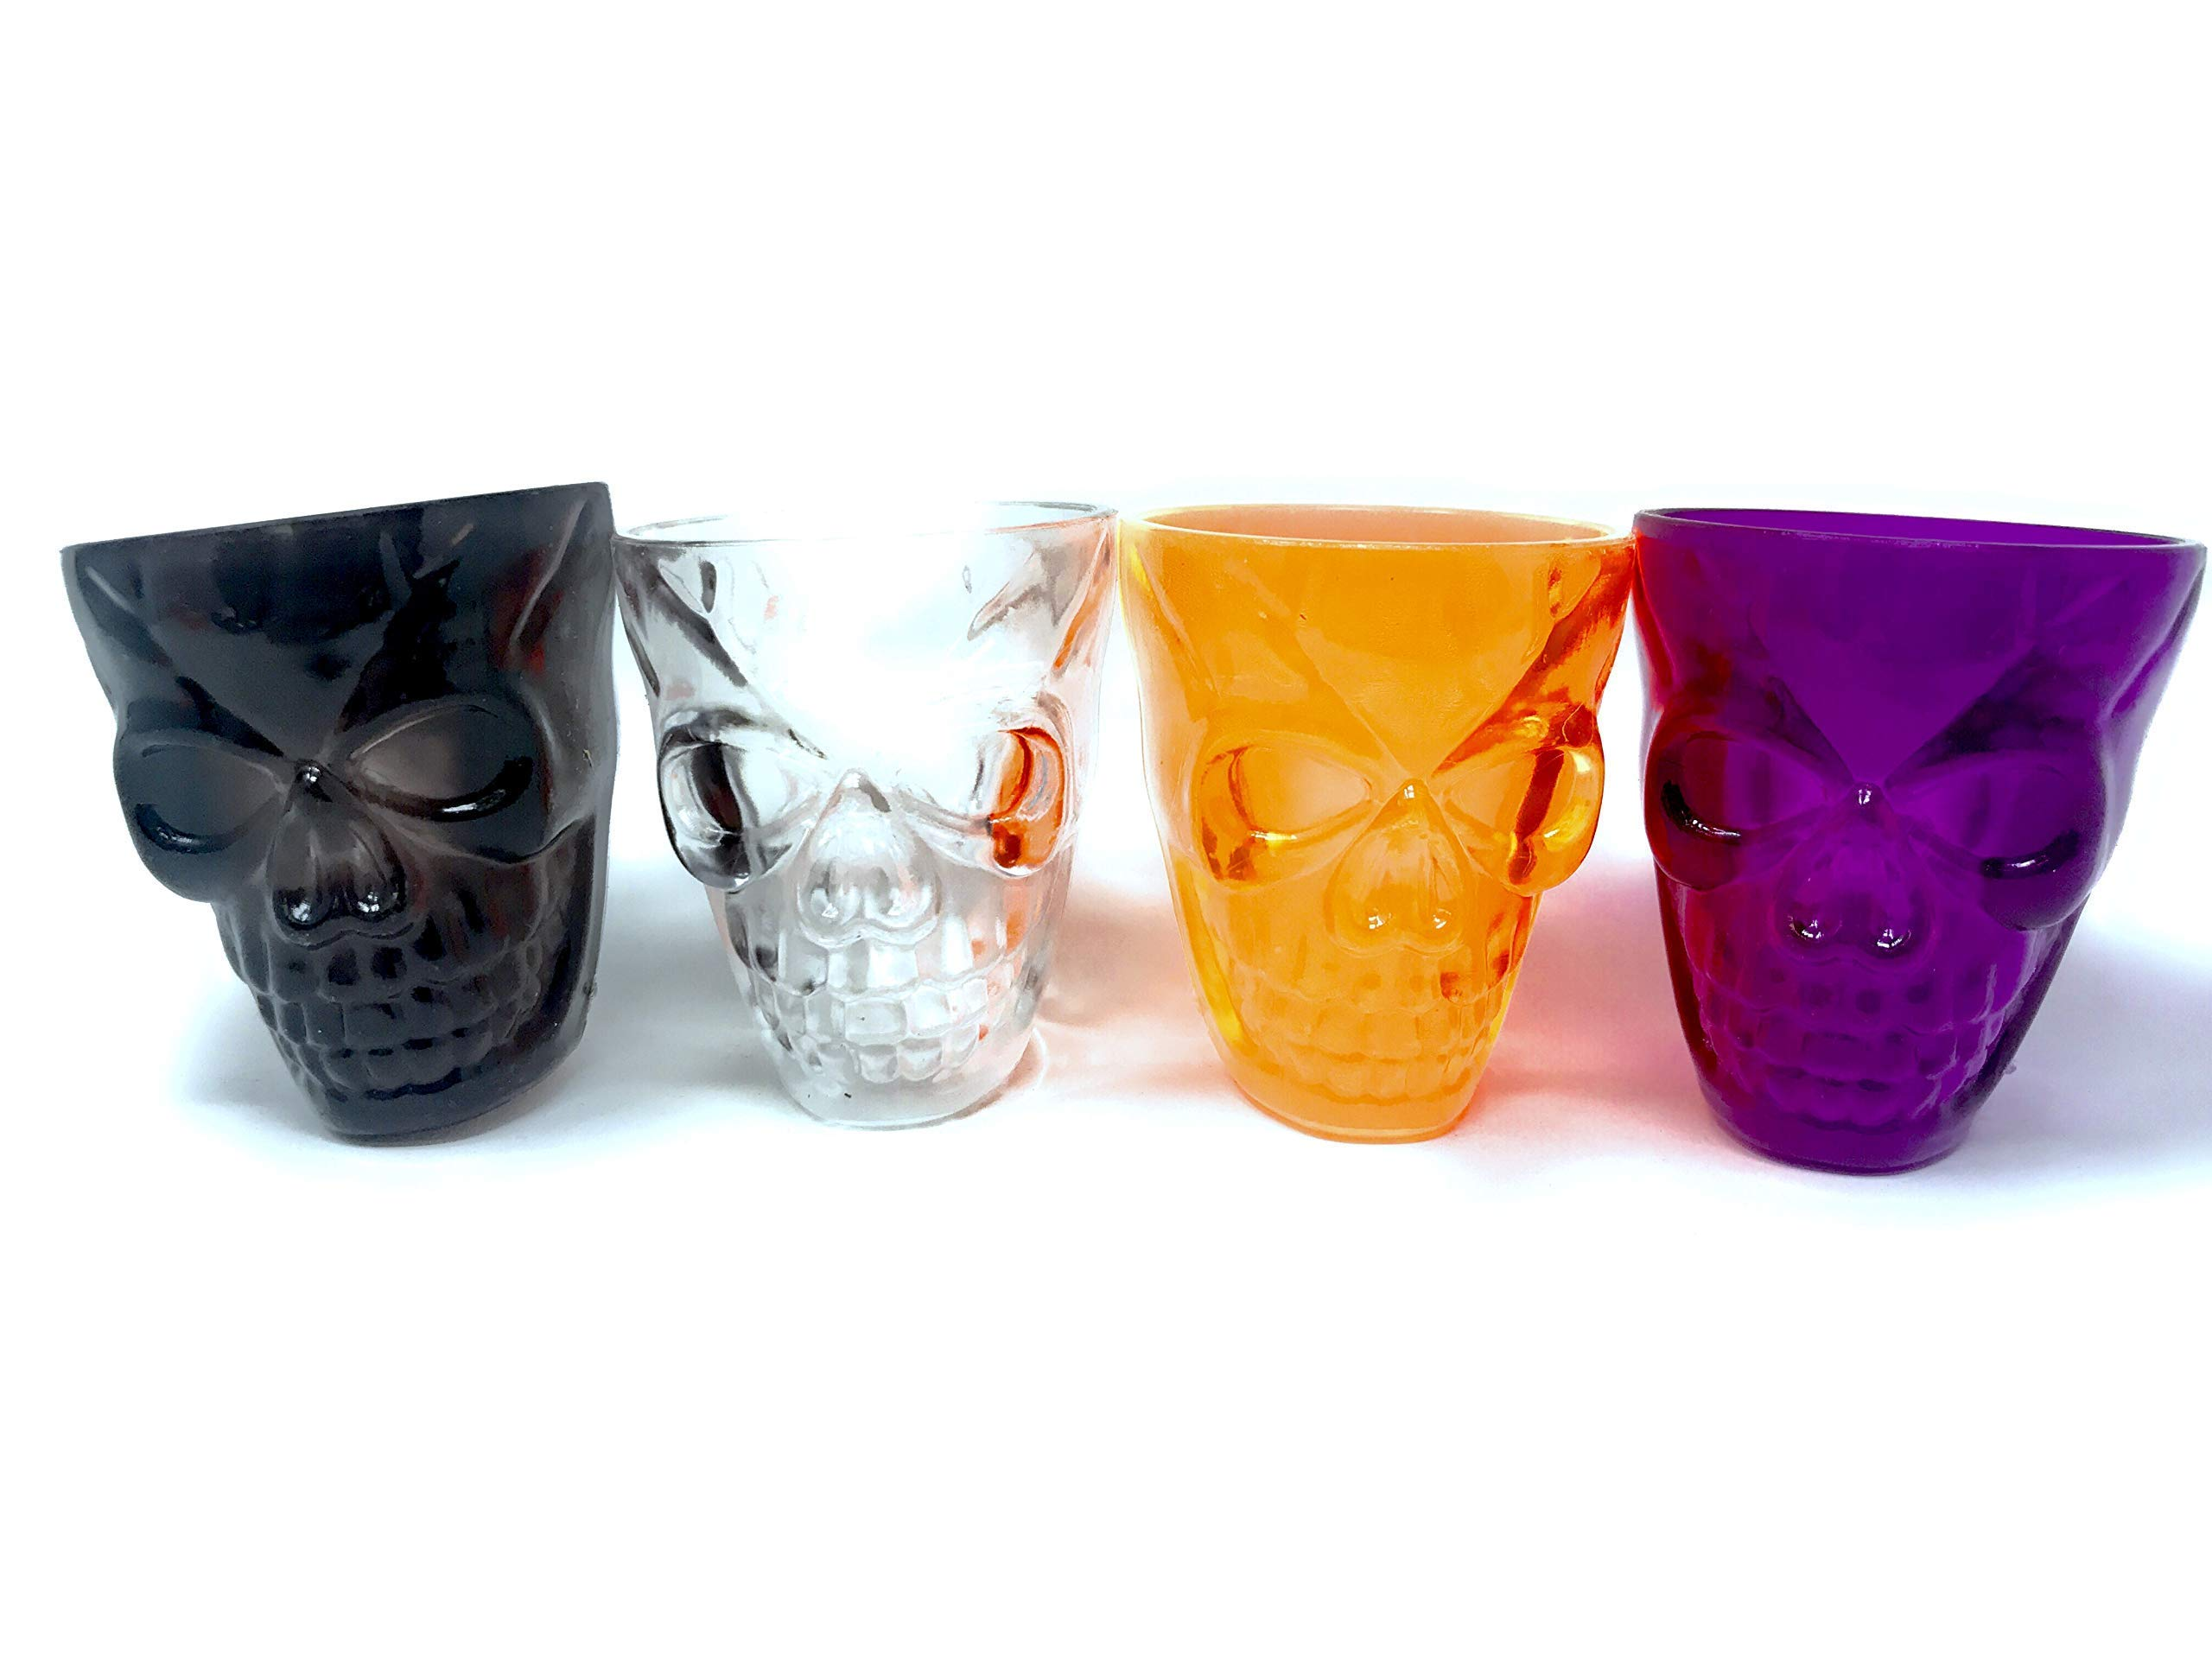 40 Bulk Halloween Skull Party Favor Shot Glasses or Dessert Cups - ideal for kids of all ages by Sea View Treasures